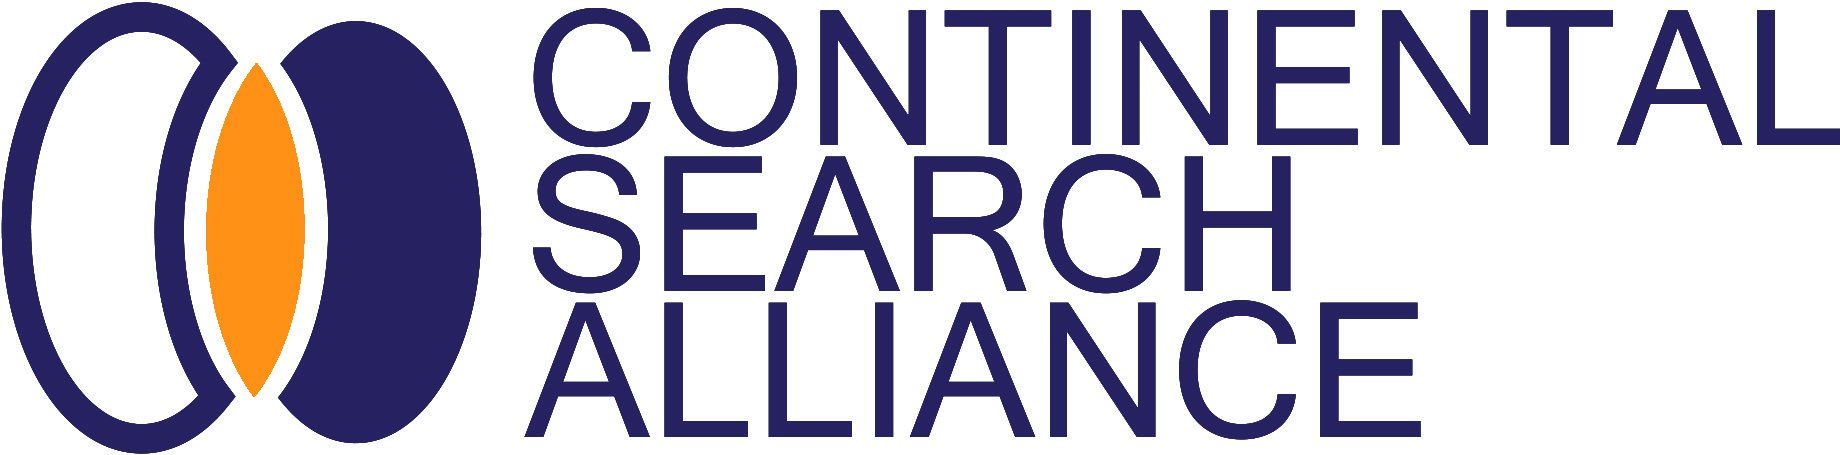 Logo Continental Search Alliance (CSA)